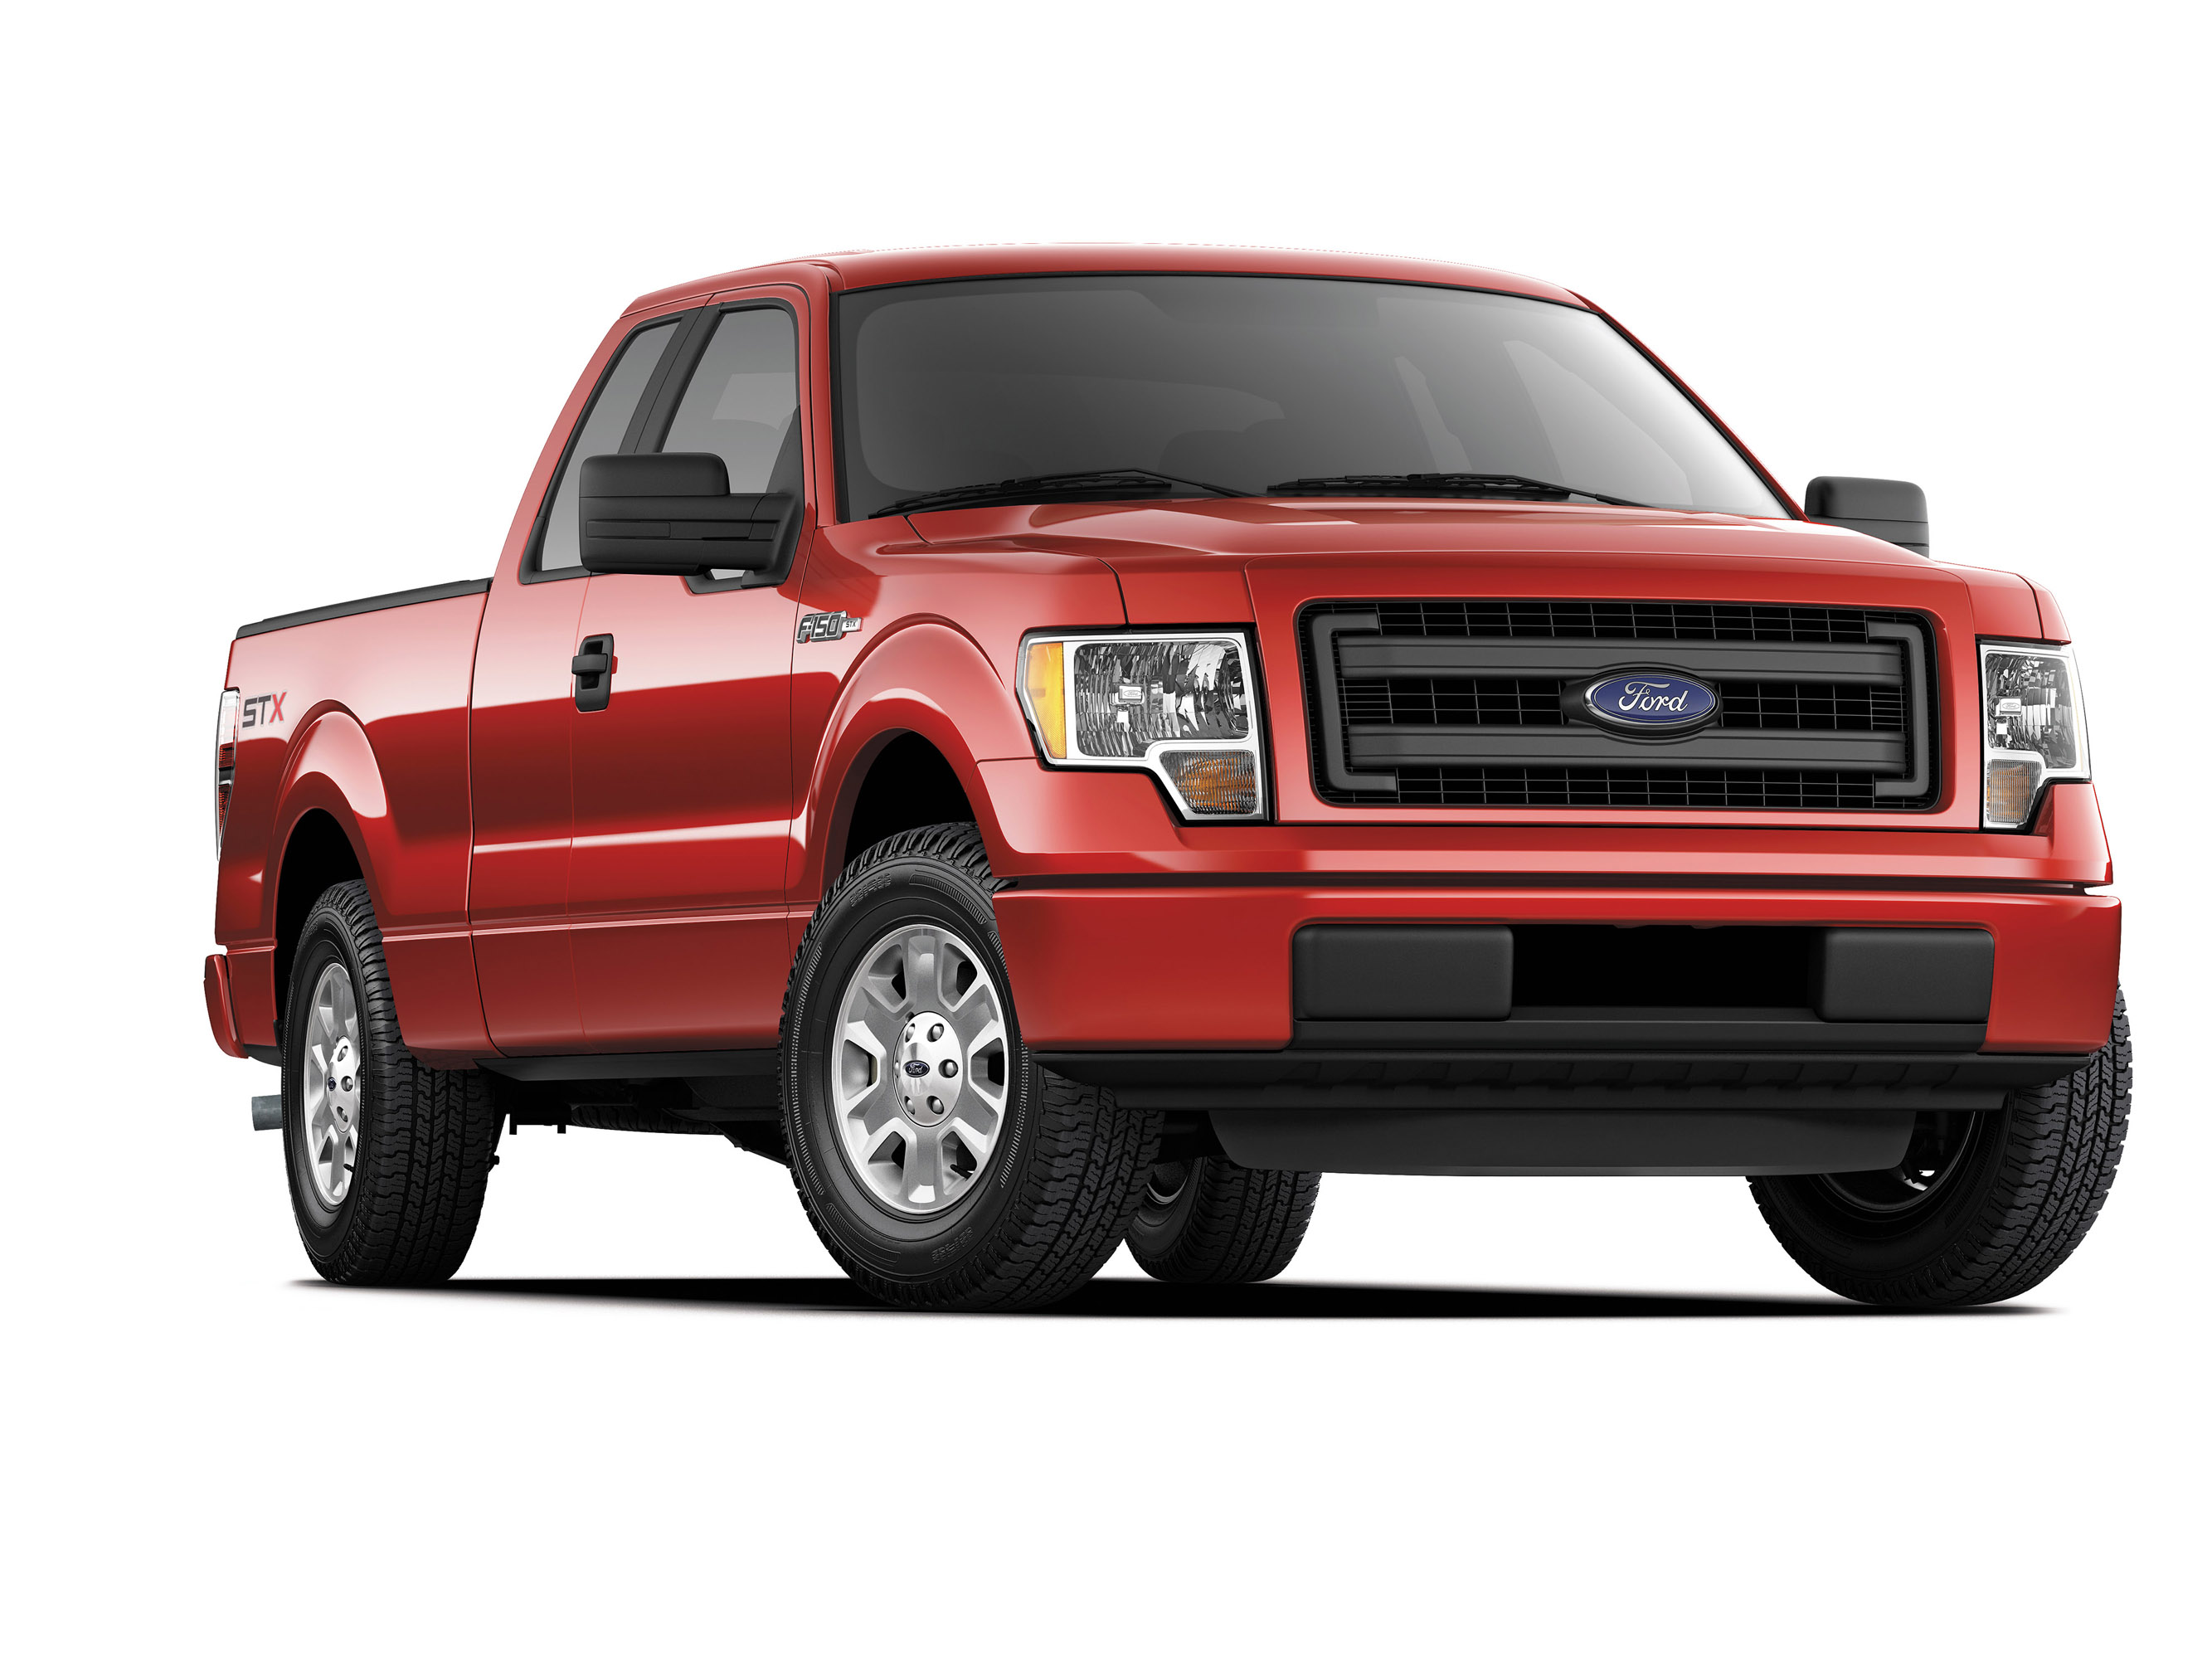 2014 Ford F 150 Stx Supercrew Picture 88550